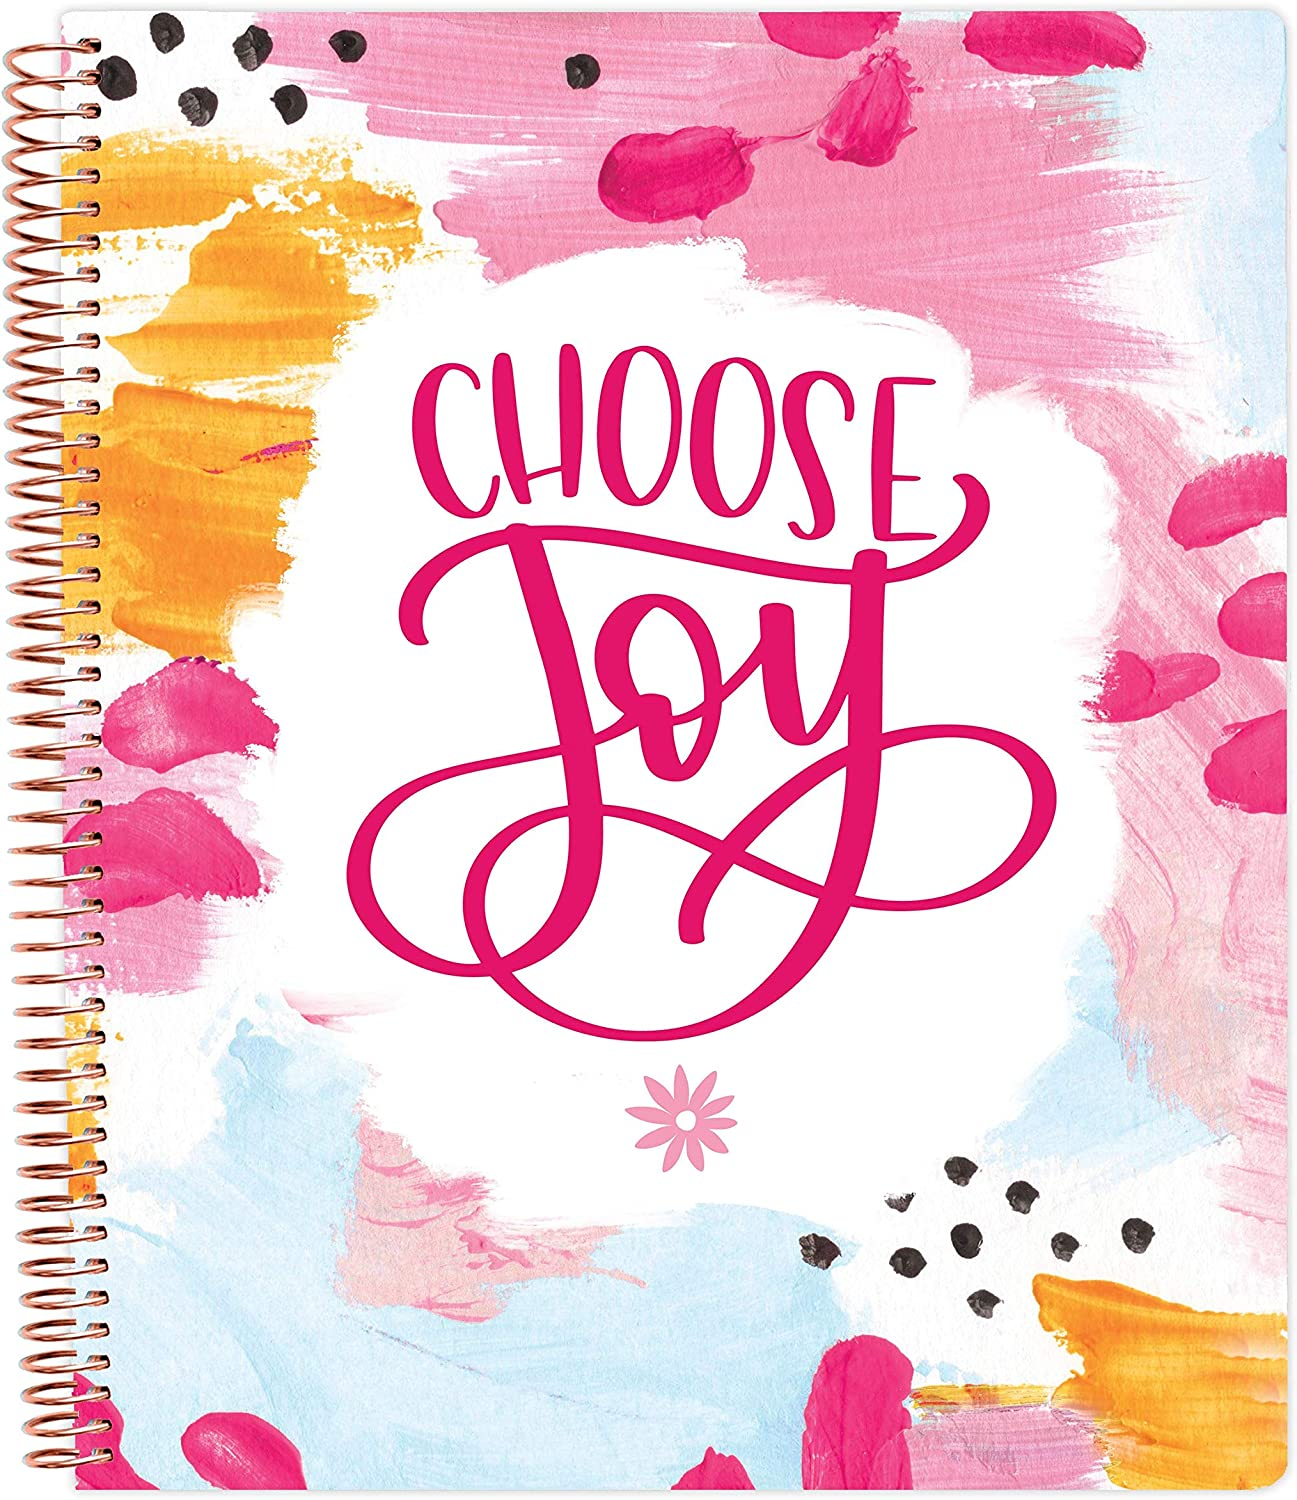 "bloom daily planners All in One Ultimate Monthly & Weekly Undated Calendar Planner, Notebook, Sketch Book, Grid Pages, Coloring Book and More! 9"" x 11"" - Choose Joy"